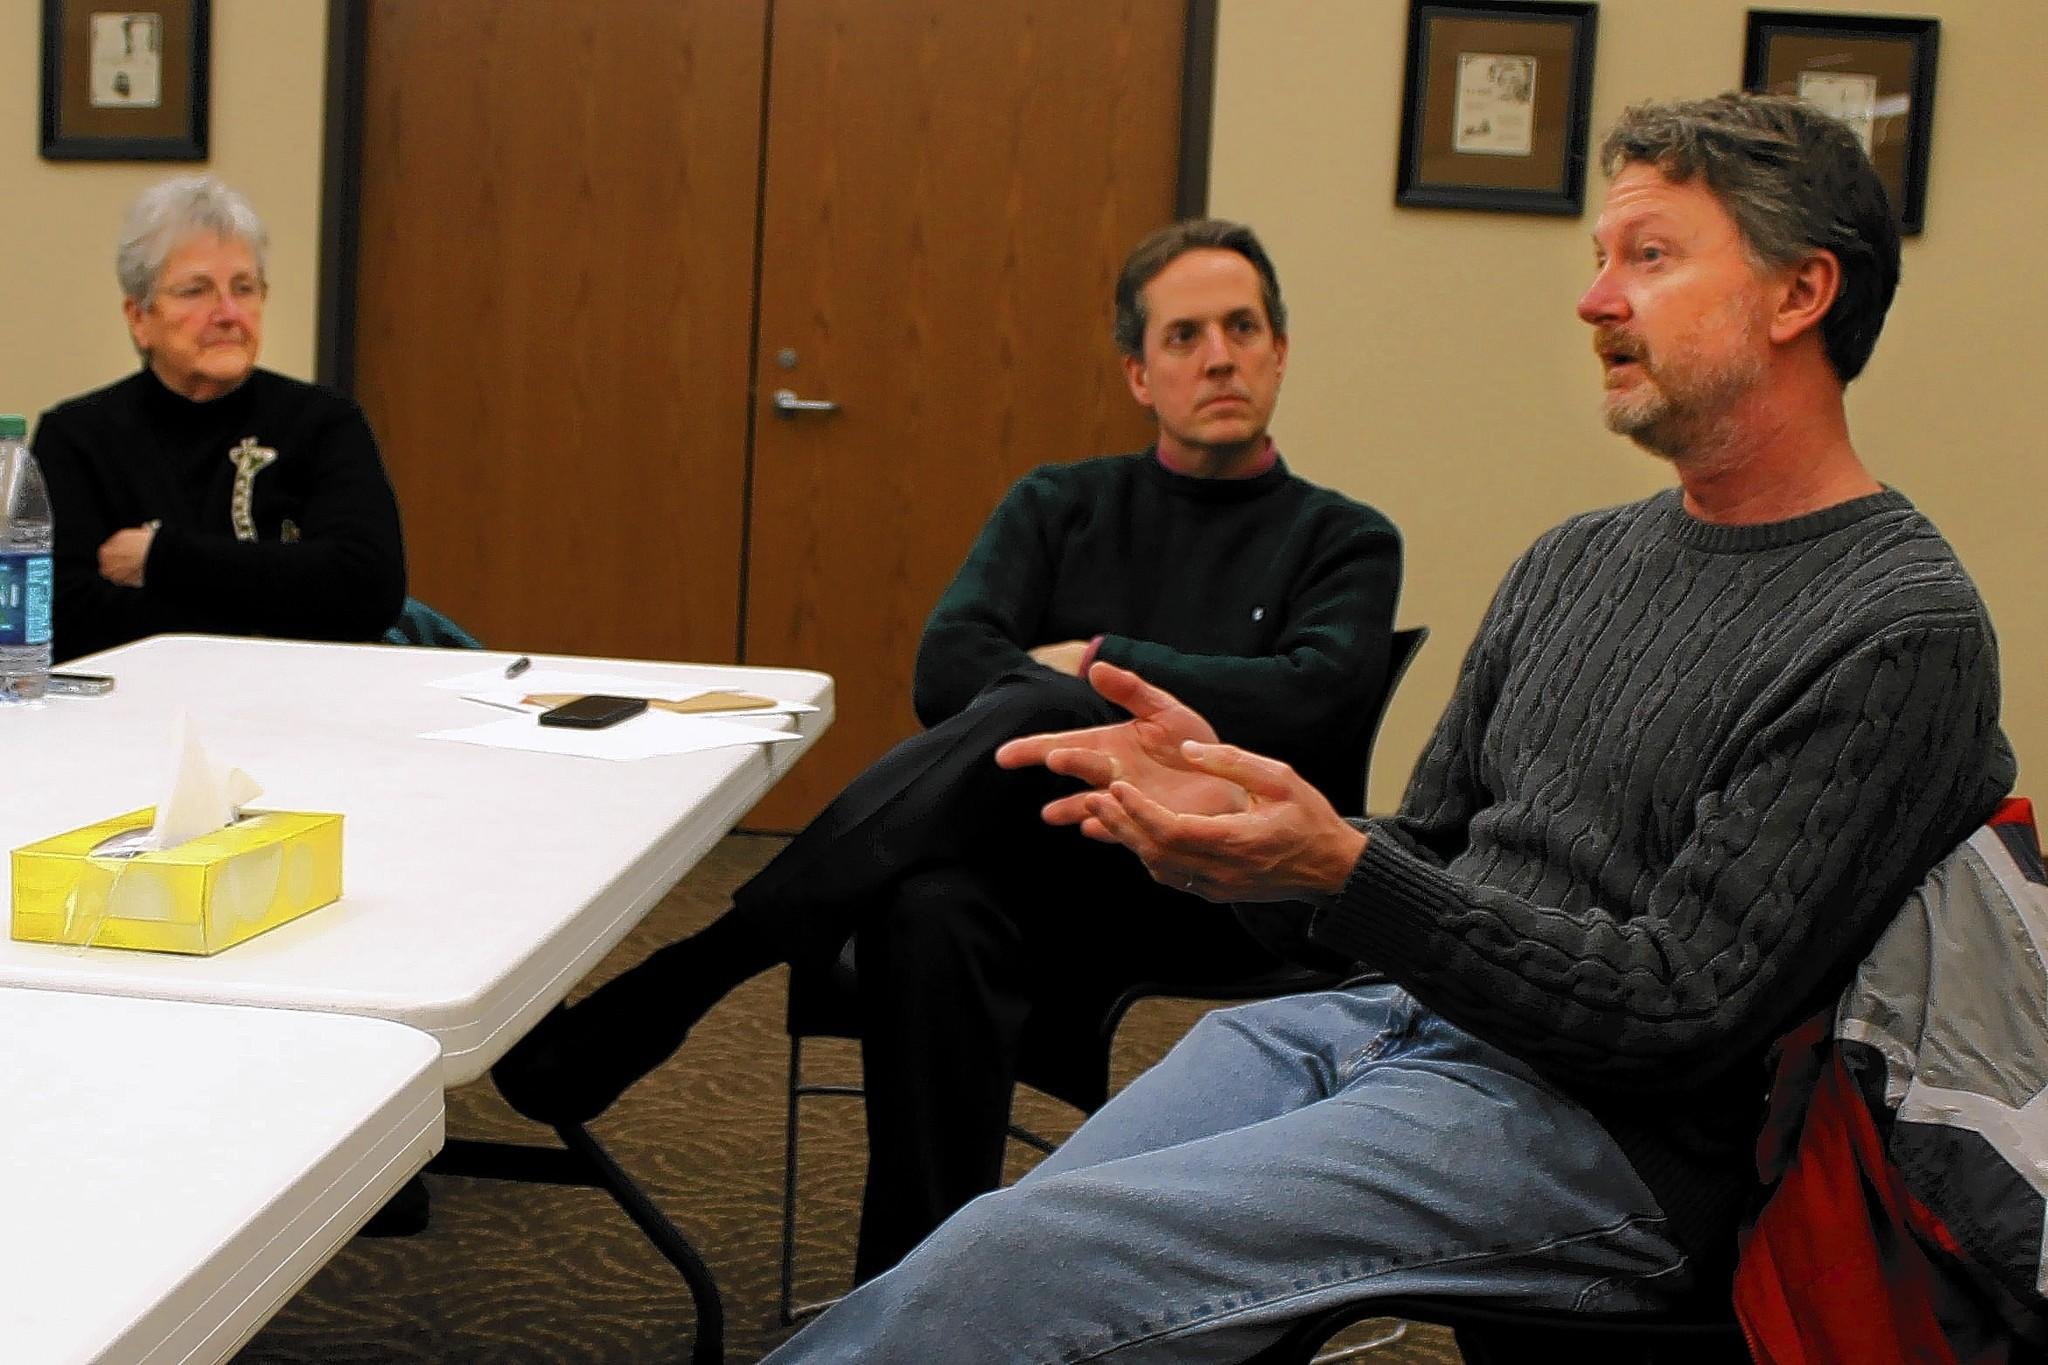 Local volunteer Peter Dudak spoke at a meeting of the newly-formed Warrenville Community Club as city clerk Emily Larson and Andy Johnson listened